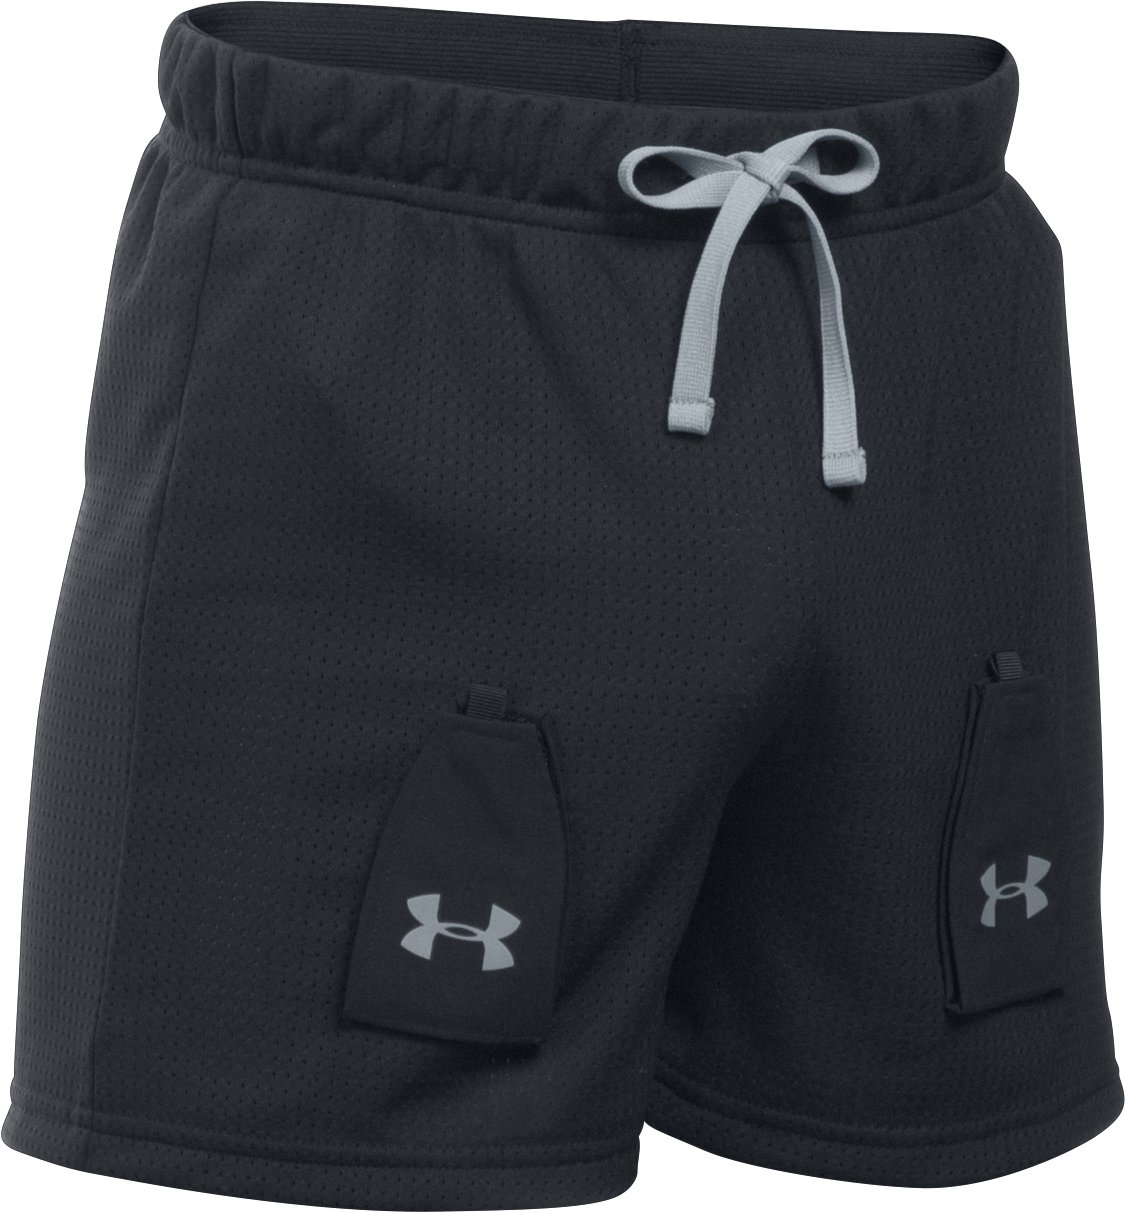 Boys' UA Hockey Mesh Shorts w/ Cup Pocket, Black